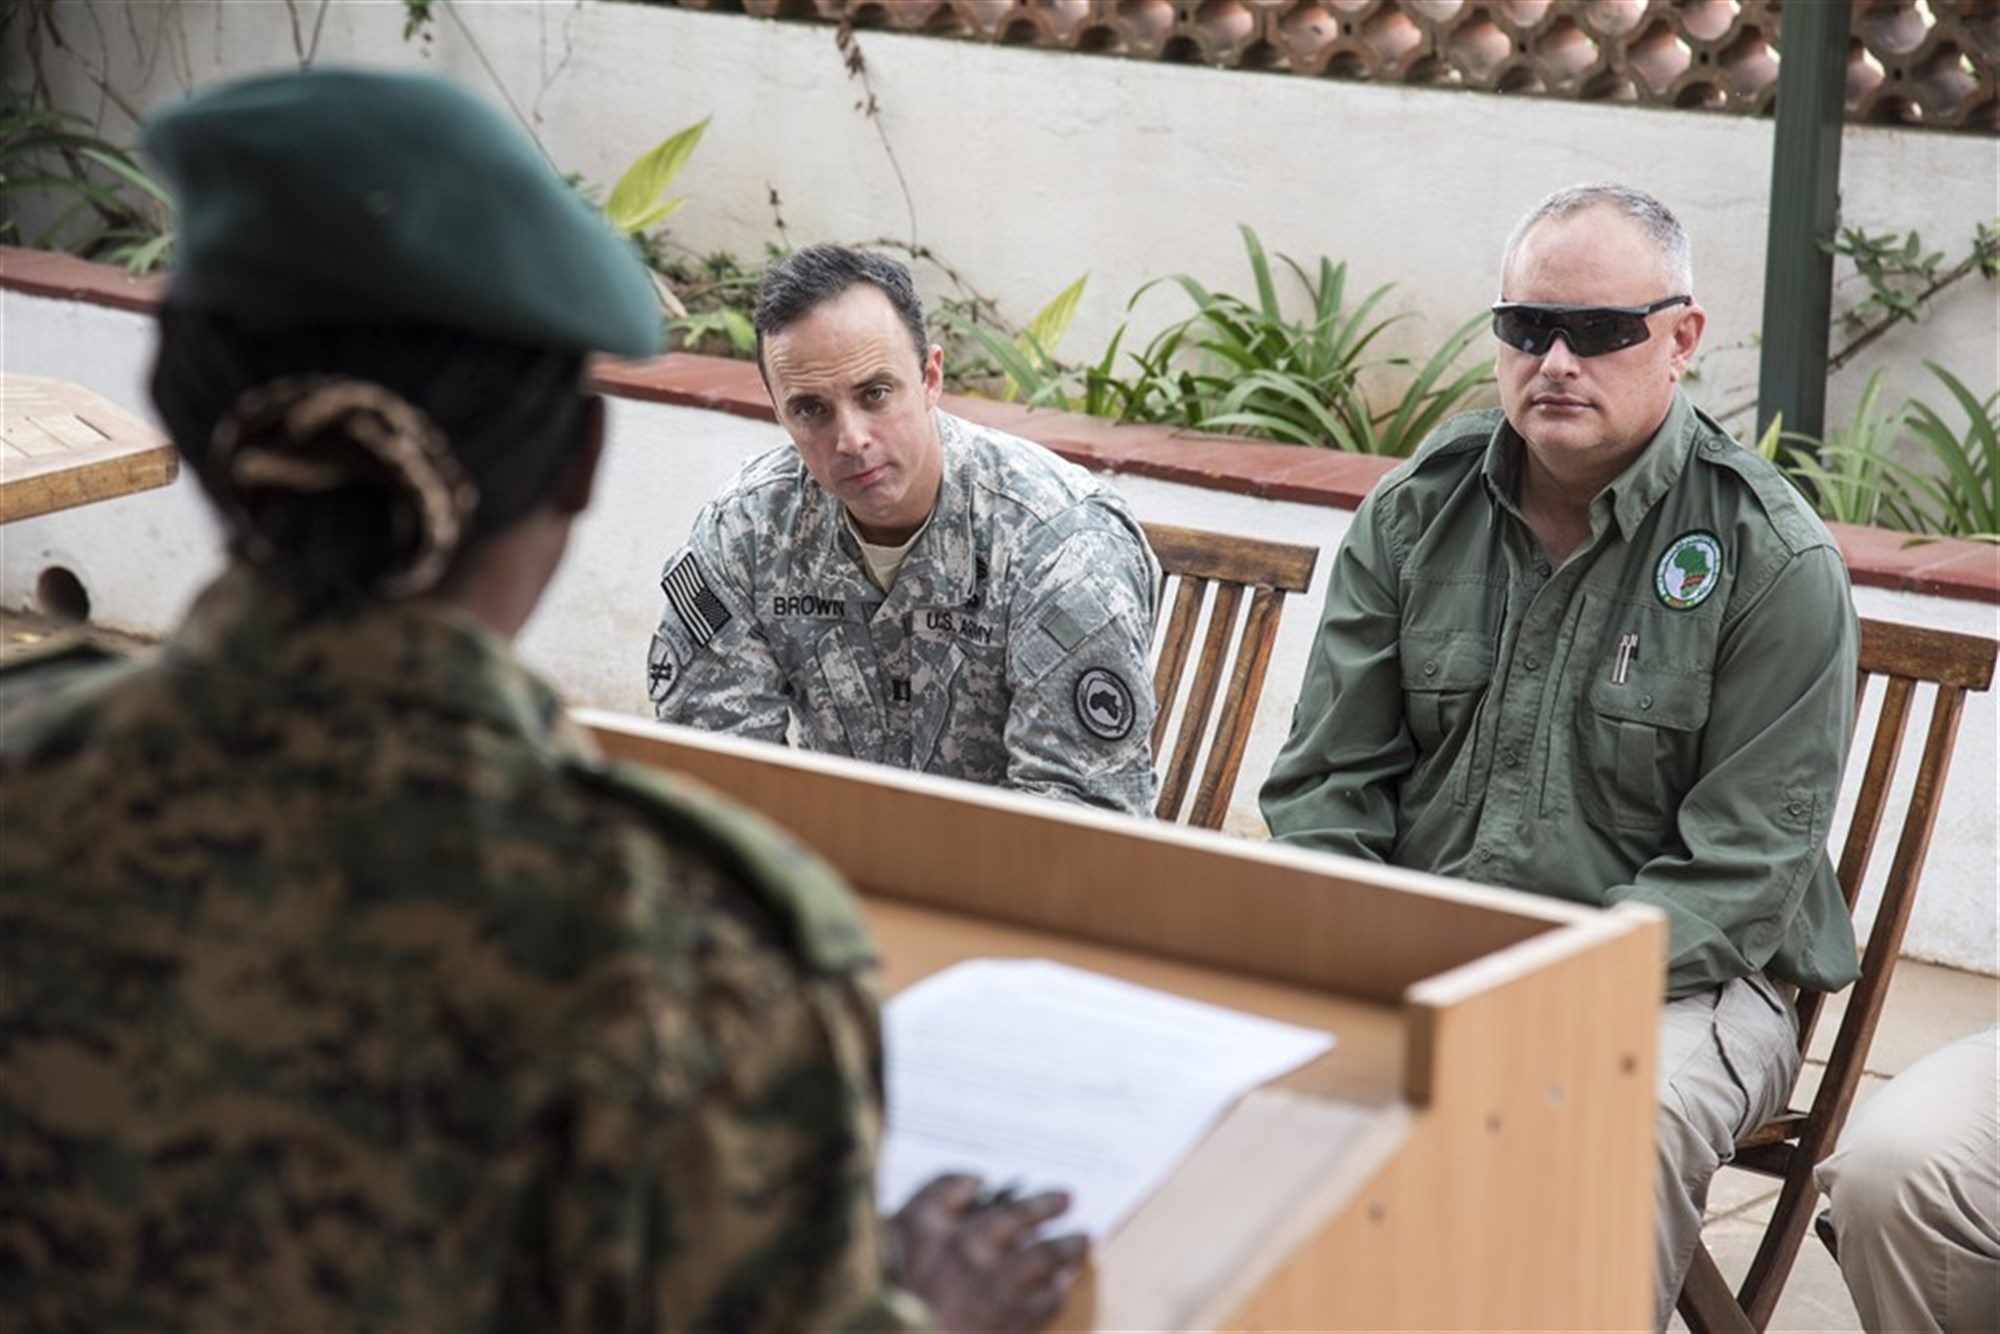 U.S. Army Capt. Daniel Brown, Africa Contingency Operations Training & Assistance (ACOTA) African Union Mission in Somalia (AMISOM) Force Headquarters training public affairs mentor, left, and Edward Wilson, ACOTA instructor, right, act as media during a mock press conference at the International Peace Support Training Center in Nairobi, Kenya, Aug. 25, 2015. The course was designed to prepare staff officers from AMISOM contributing countries for possible assignment to AMISOM Force Headquarters, and the public affairs mentors questioned AMISOM PA representatives to prepare them for the significant media presence in Somalia. (U.S. Air Force photo by Staff Sgt. Nathan Maysonet/released)